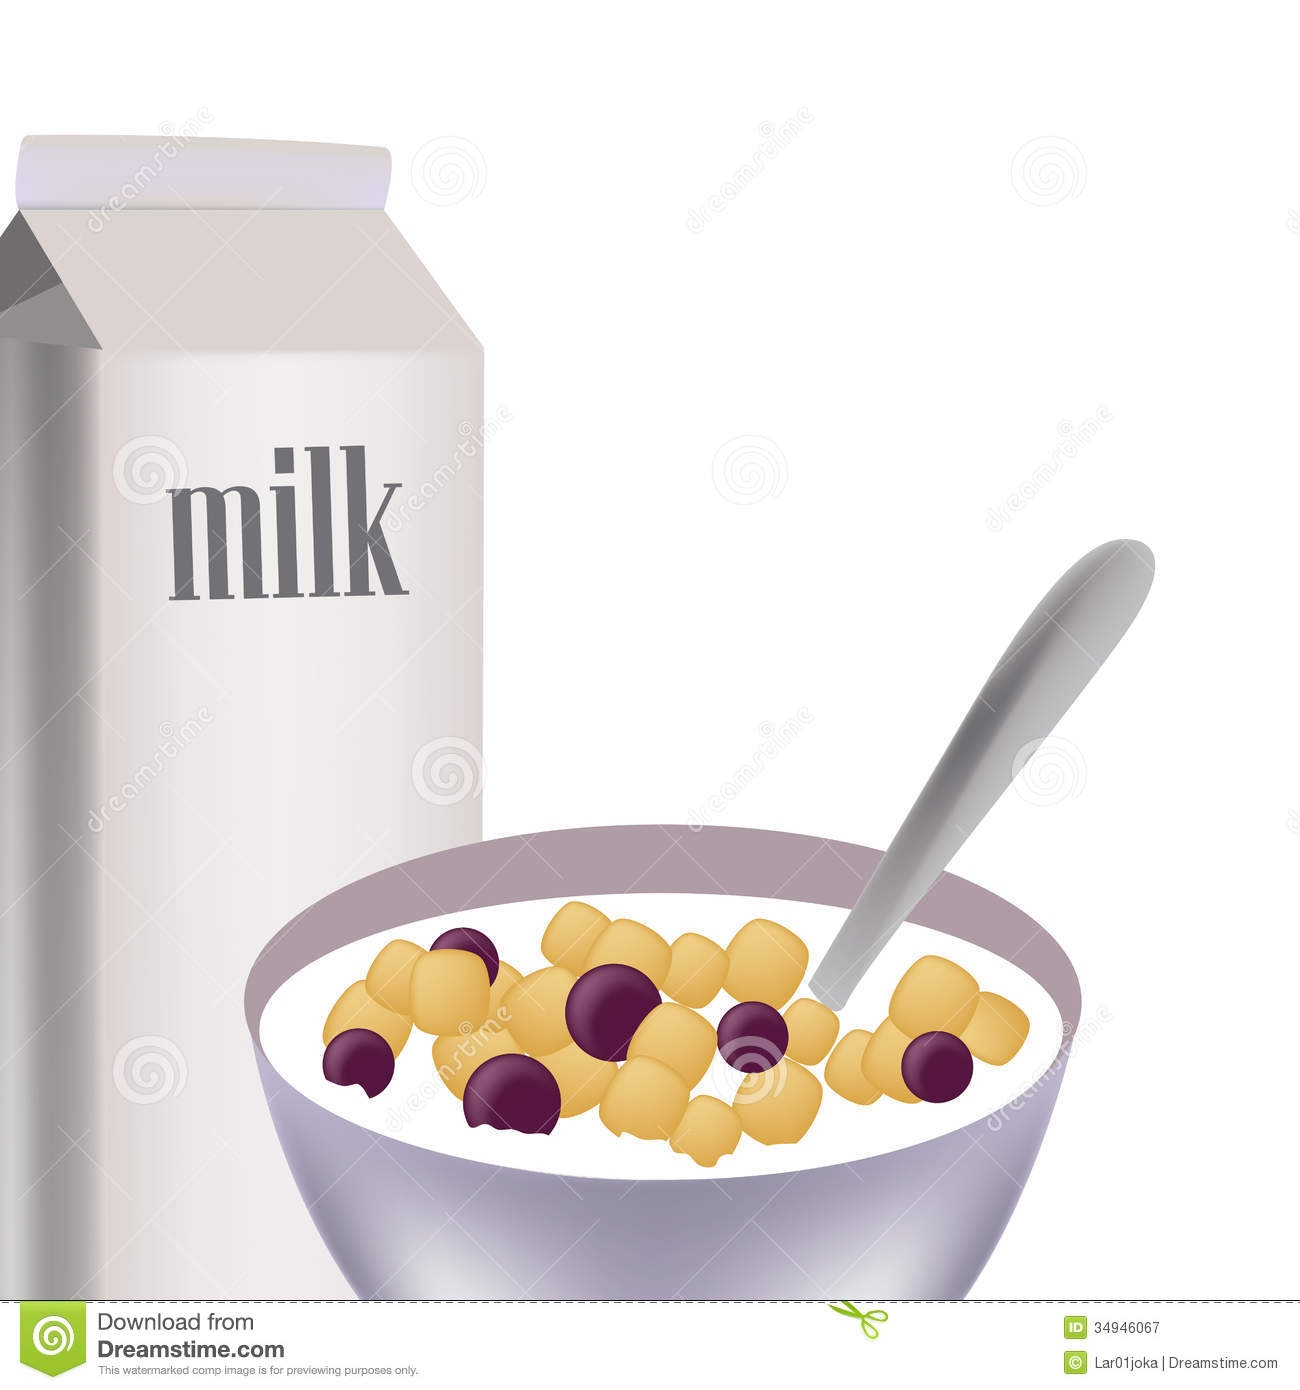 Unique gallery digital collection. Cereal clipart cereal milk